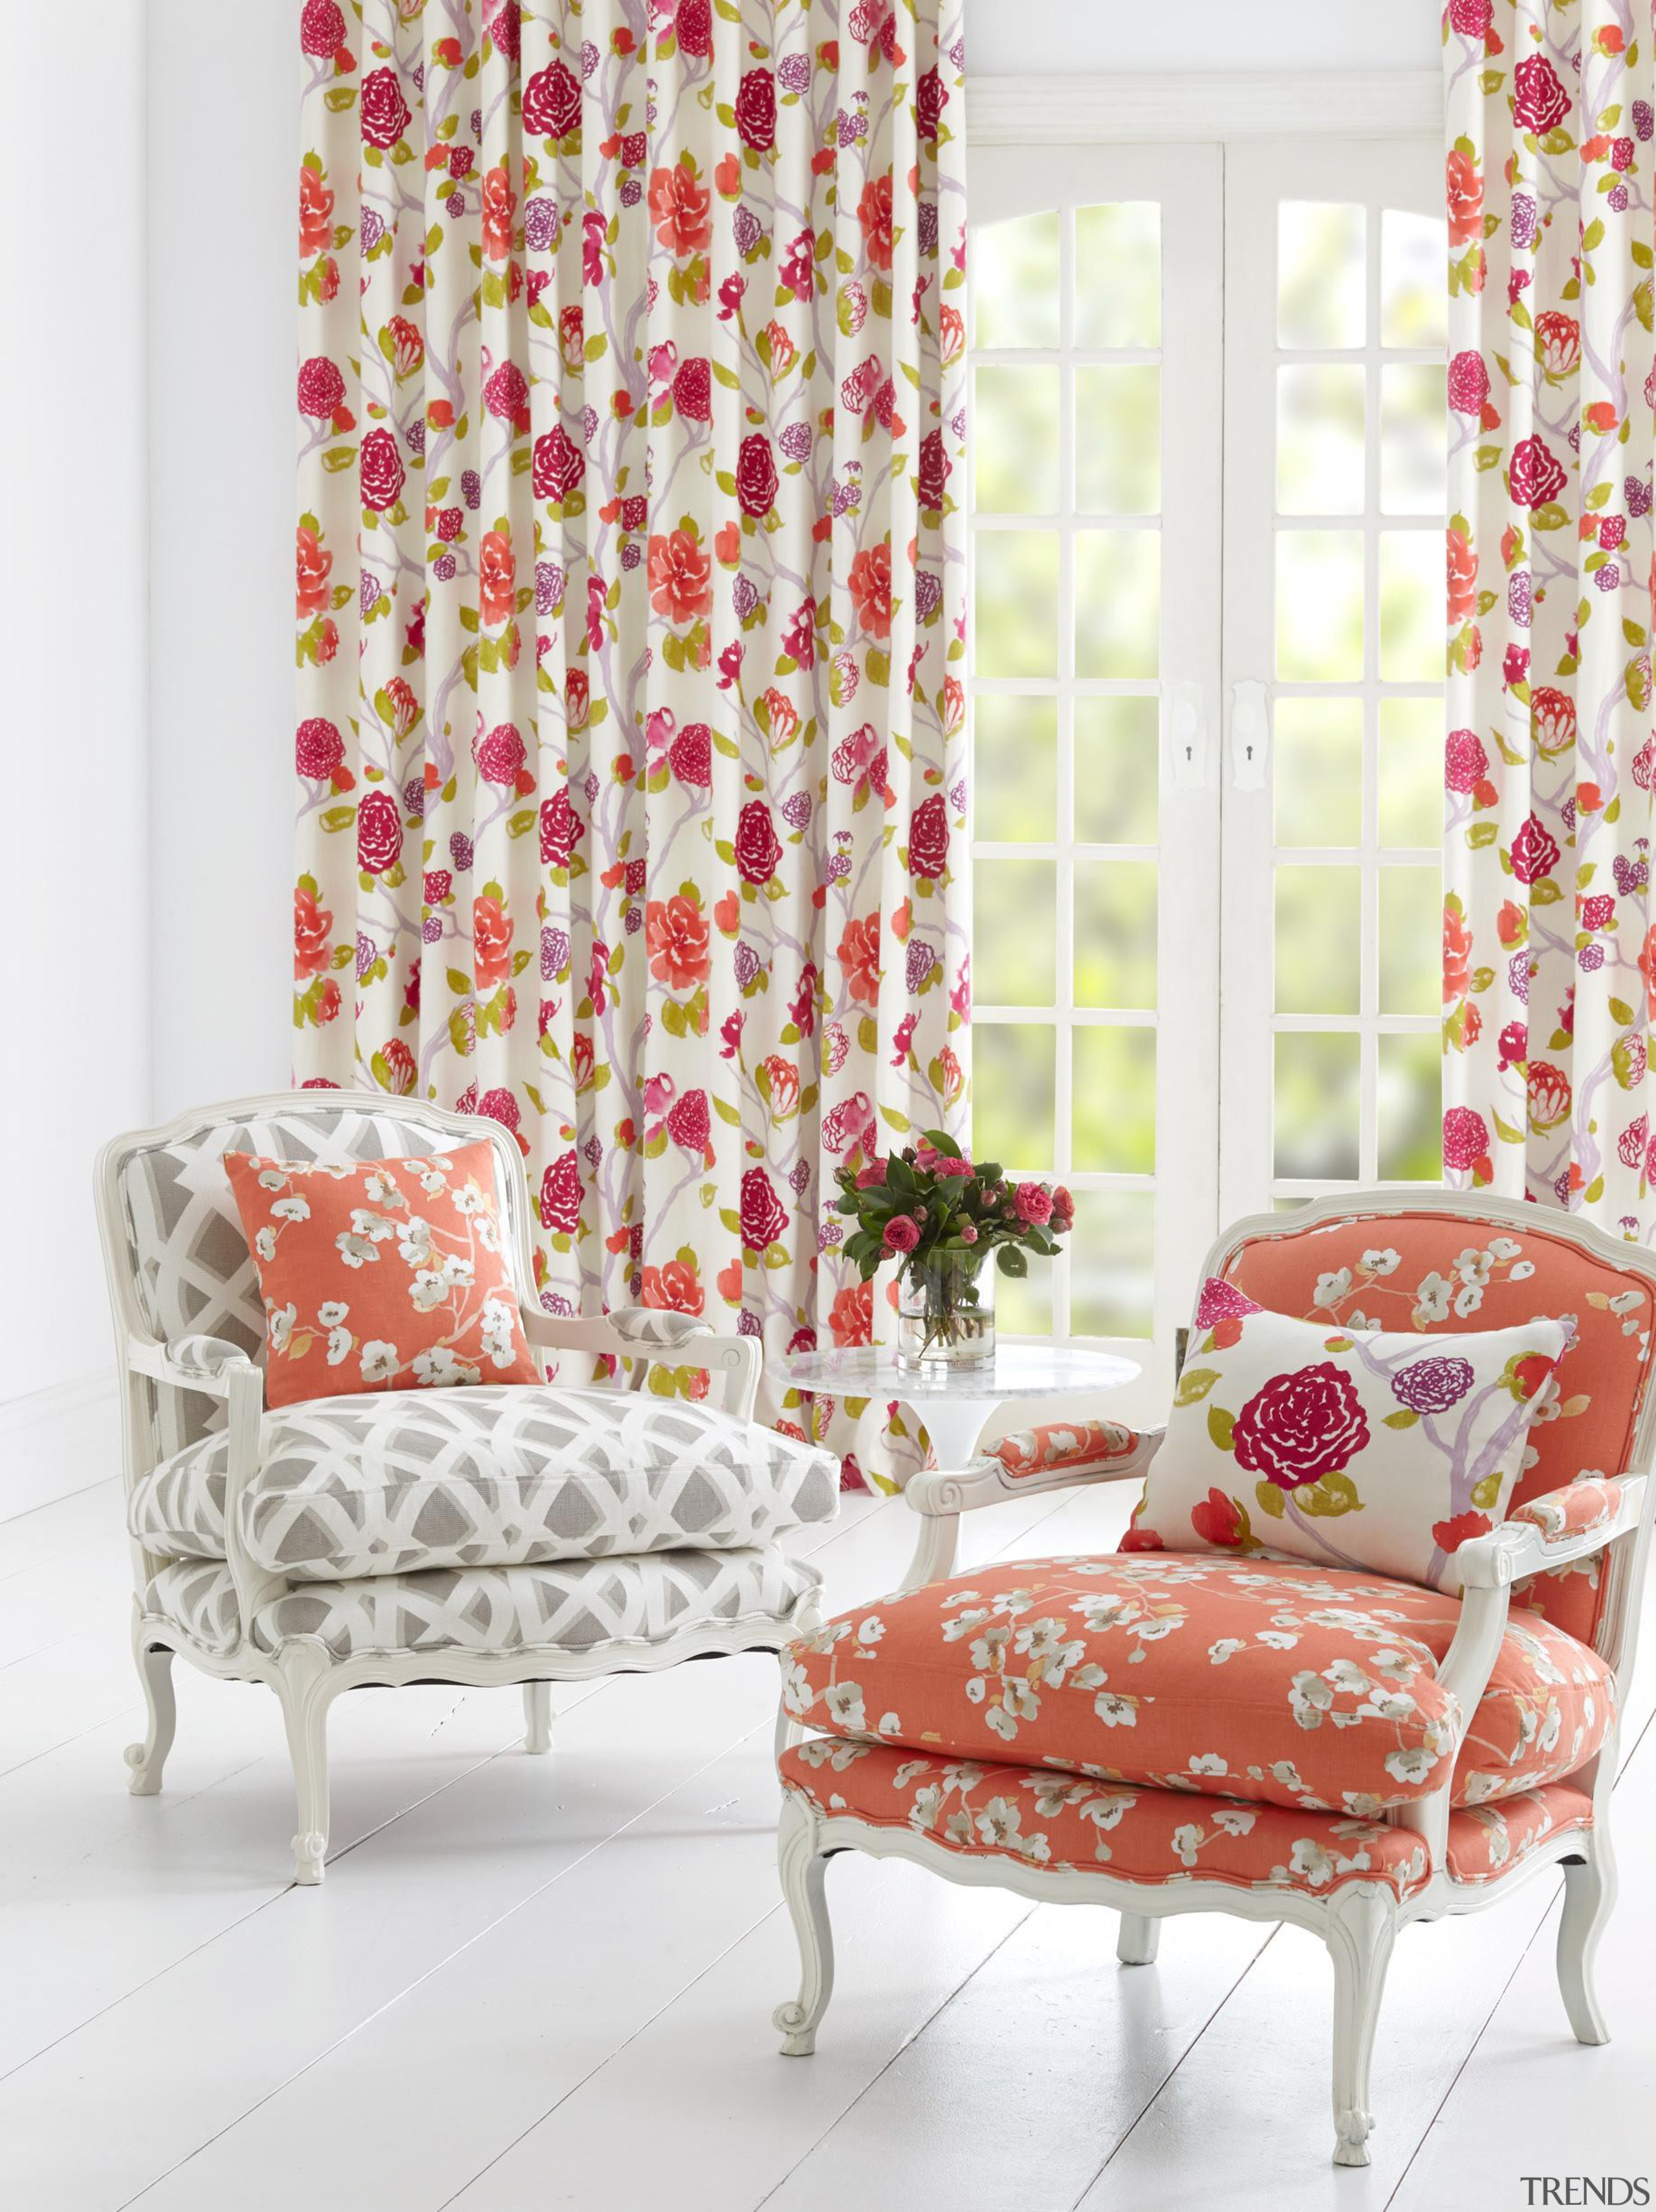 Oriental Trail - Oriental Trail Collection - chair chair, curtain, furniture, home, interior design, living room, pink, textile, window, window covering, window treatment, white